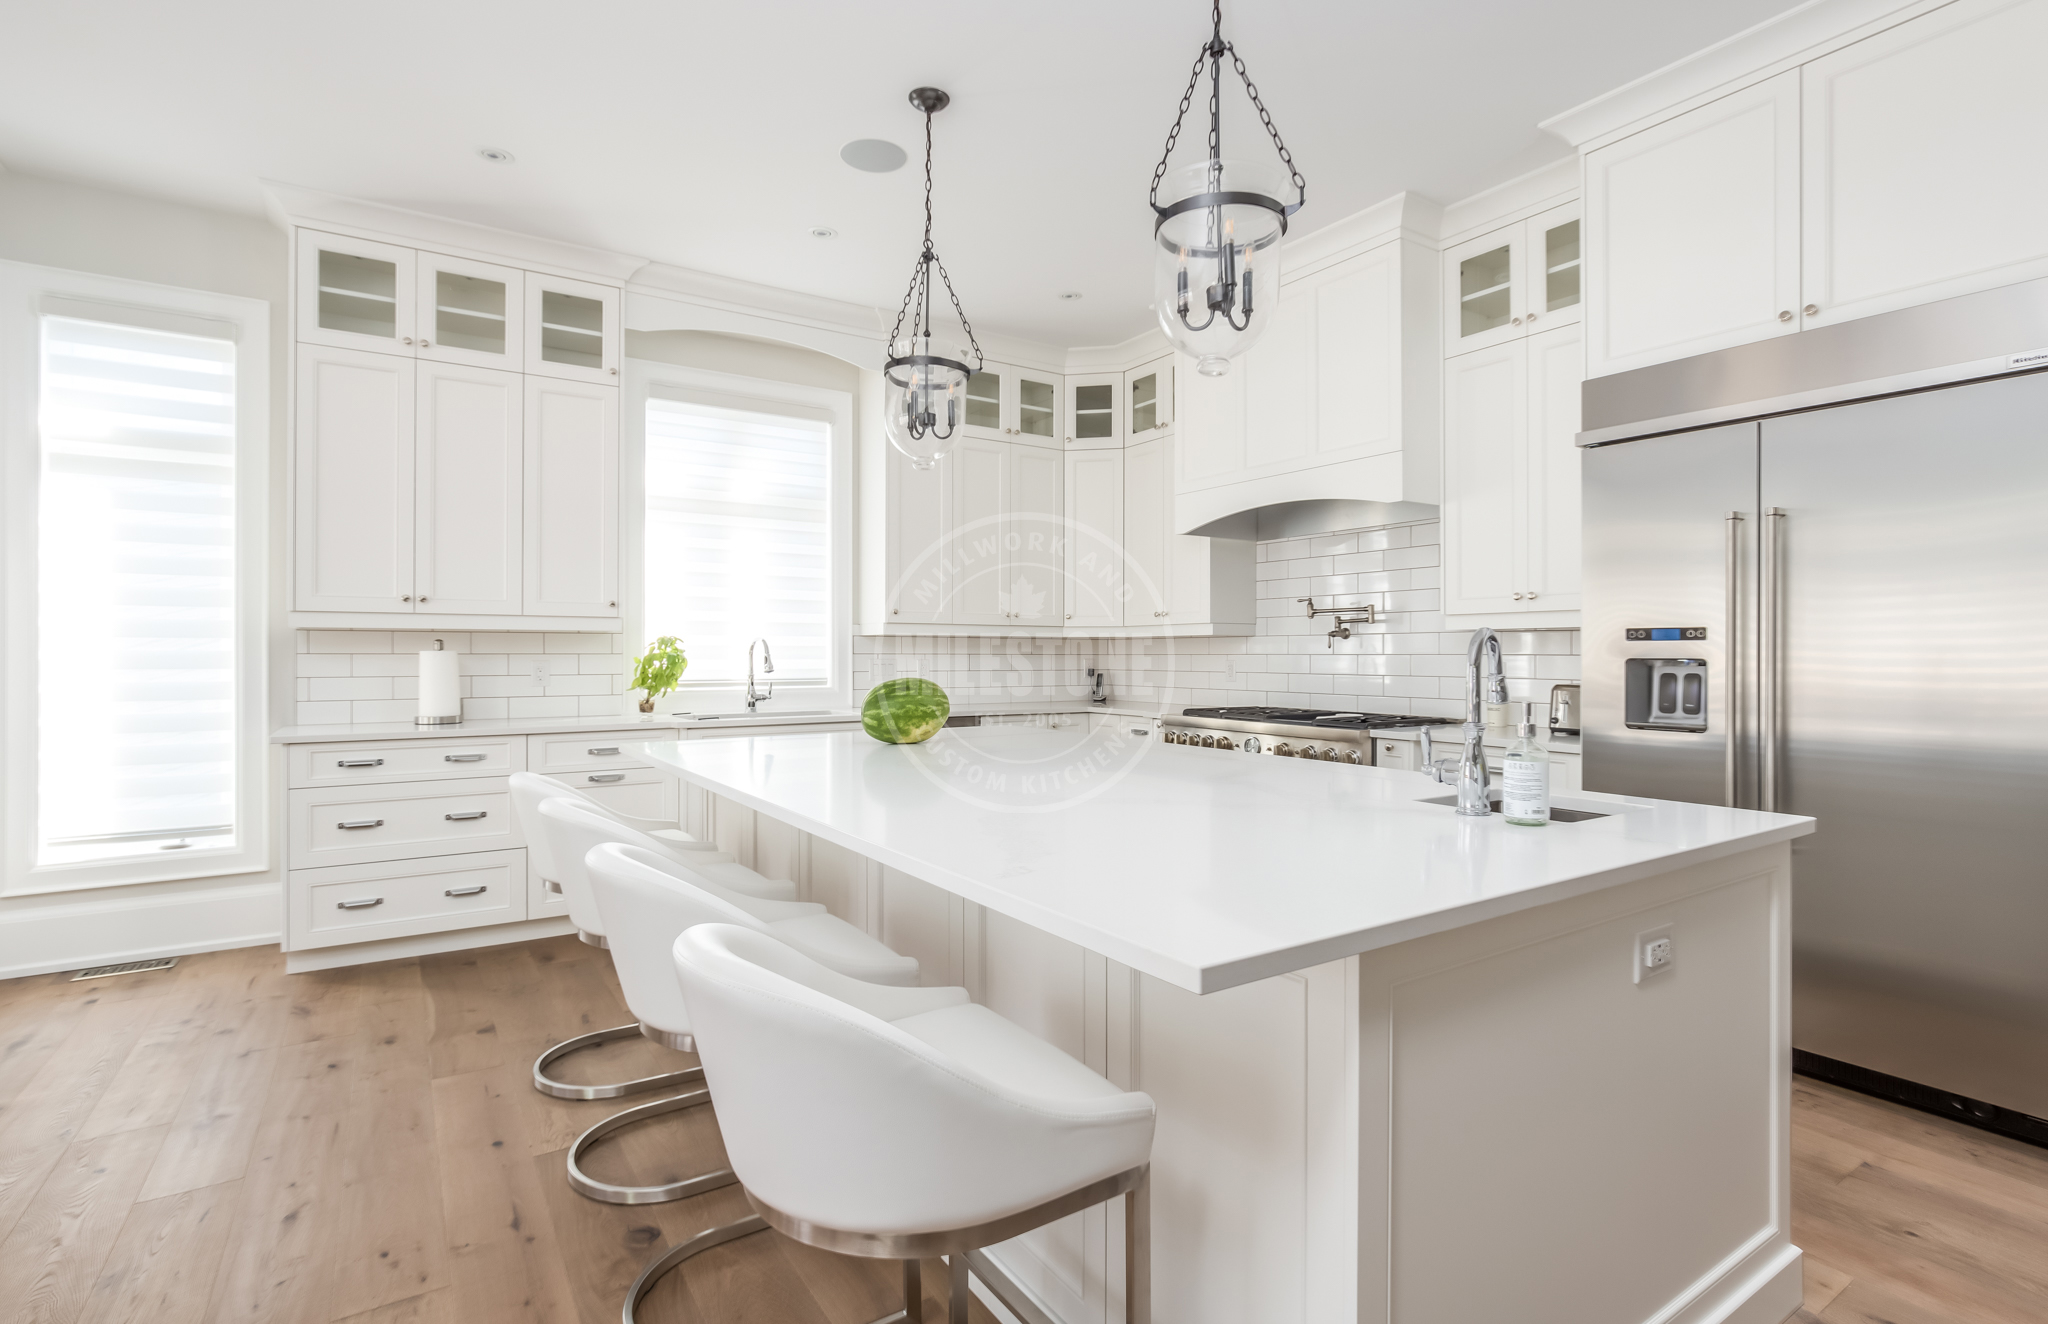 Custom Kitchens Niagara Falls, St. Catharines, Welland, Fonthill, Thorold and Area